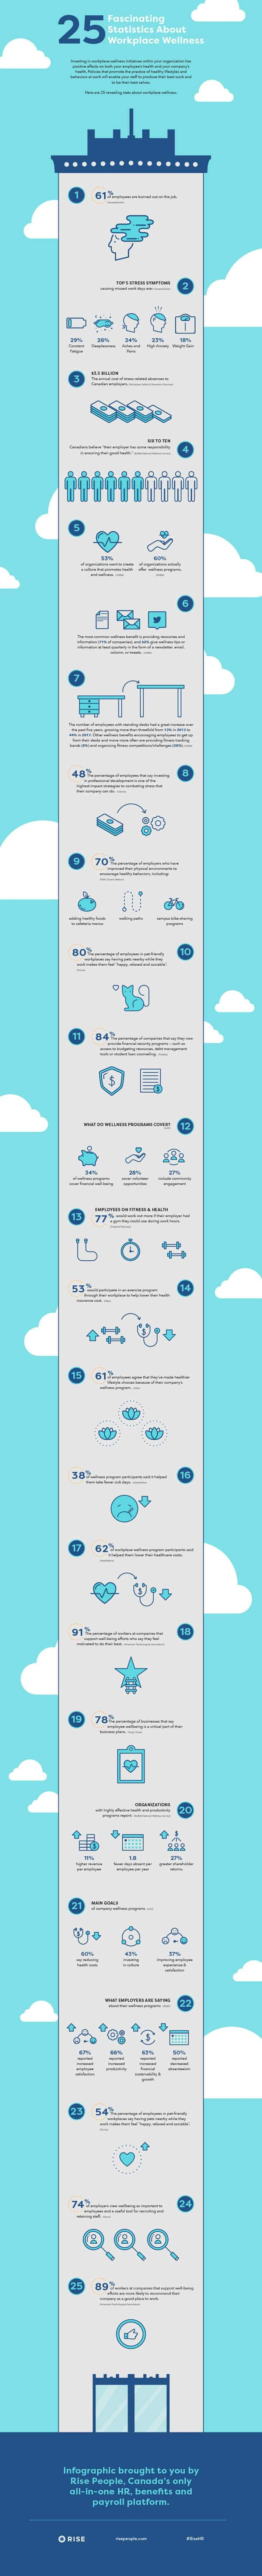 workplace wellness statistics rise people infographic